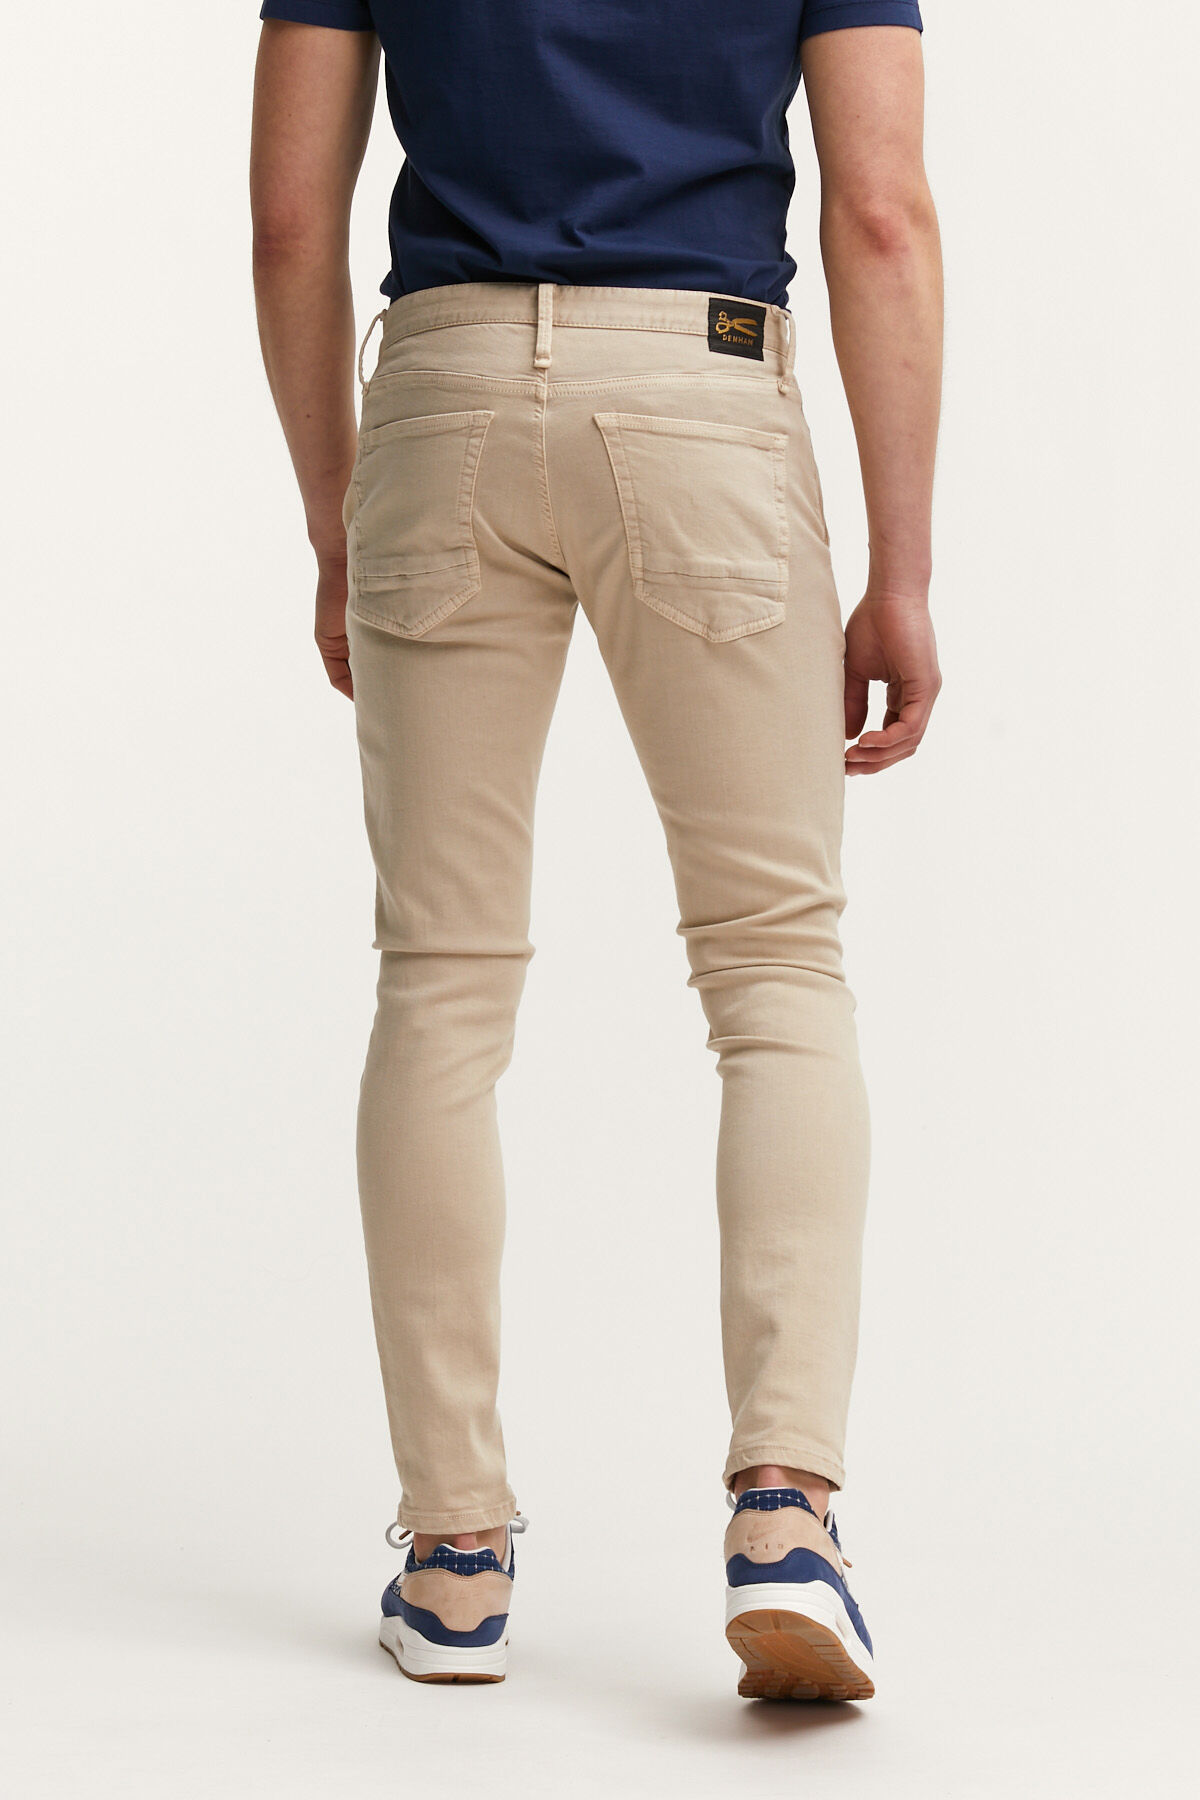 YORK CHINO Cotton & Tencel Blend - Slim, Tapered Fit